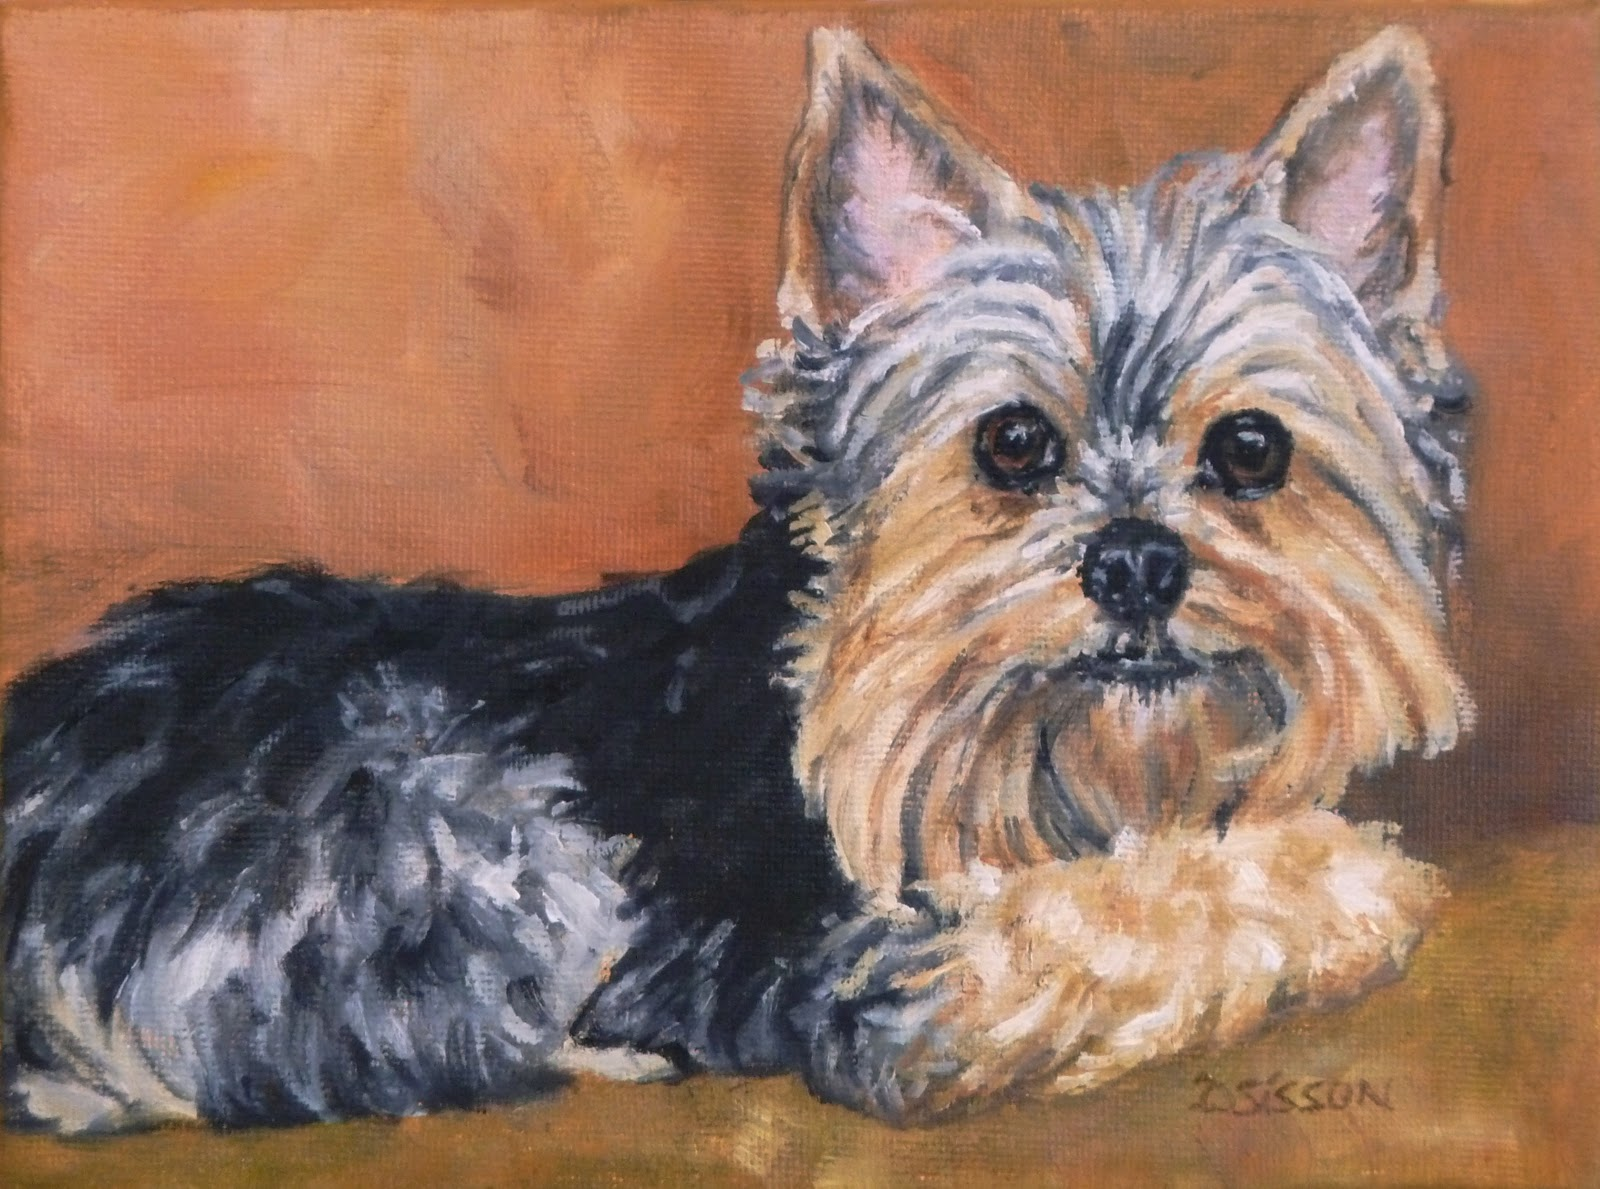 ... enjoy painting the rich coloring of black tan and silver yorkies if